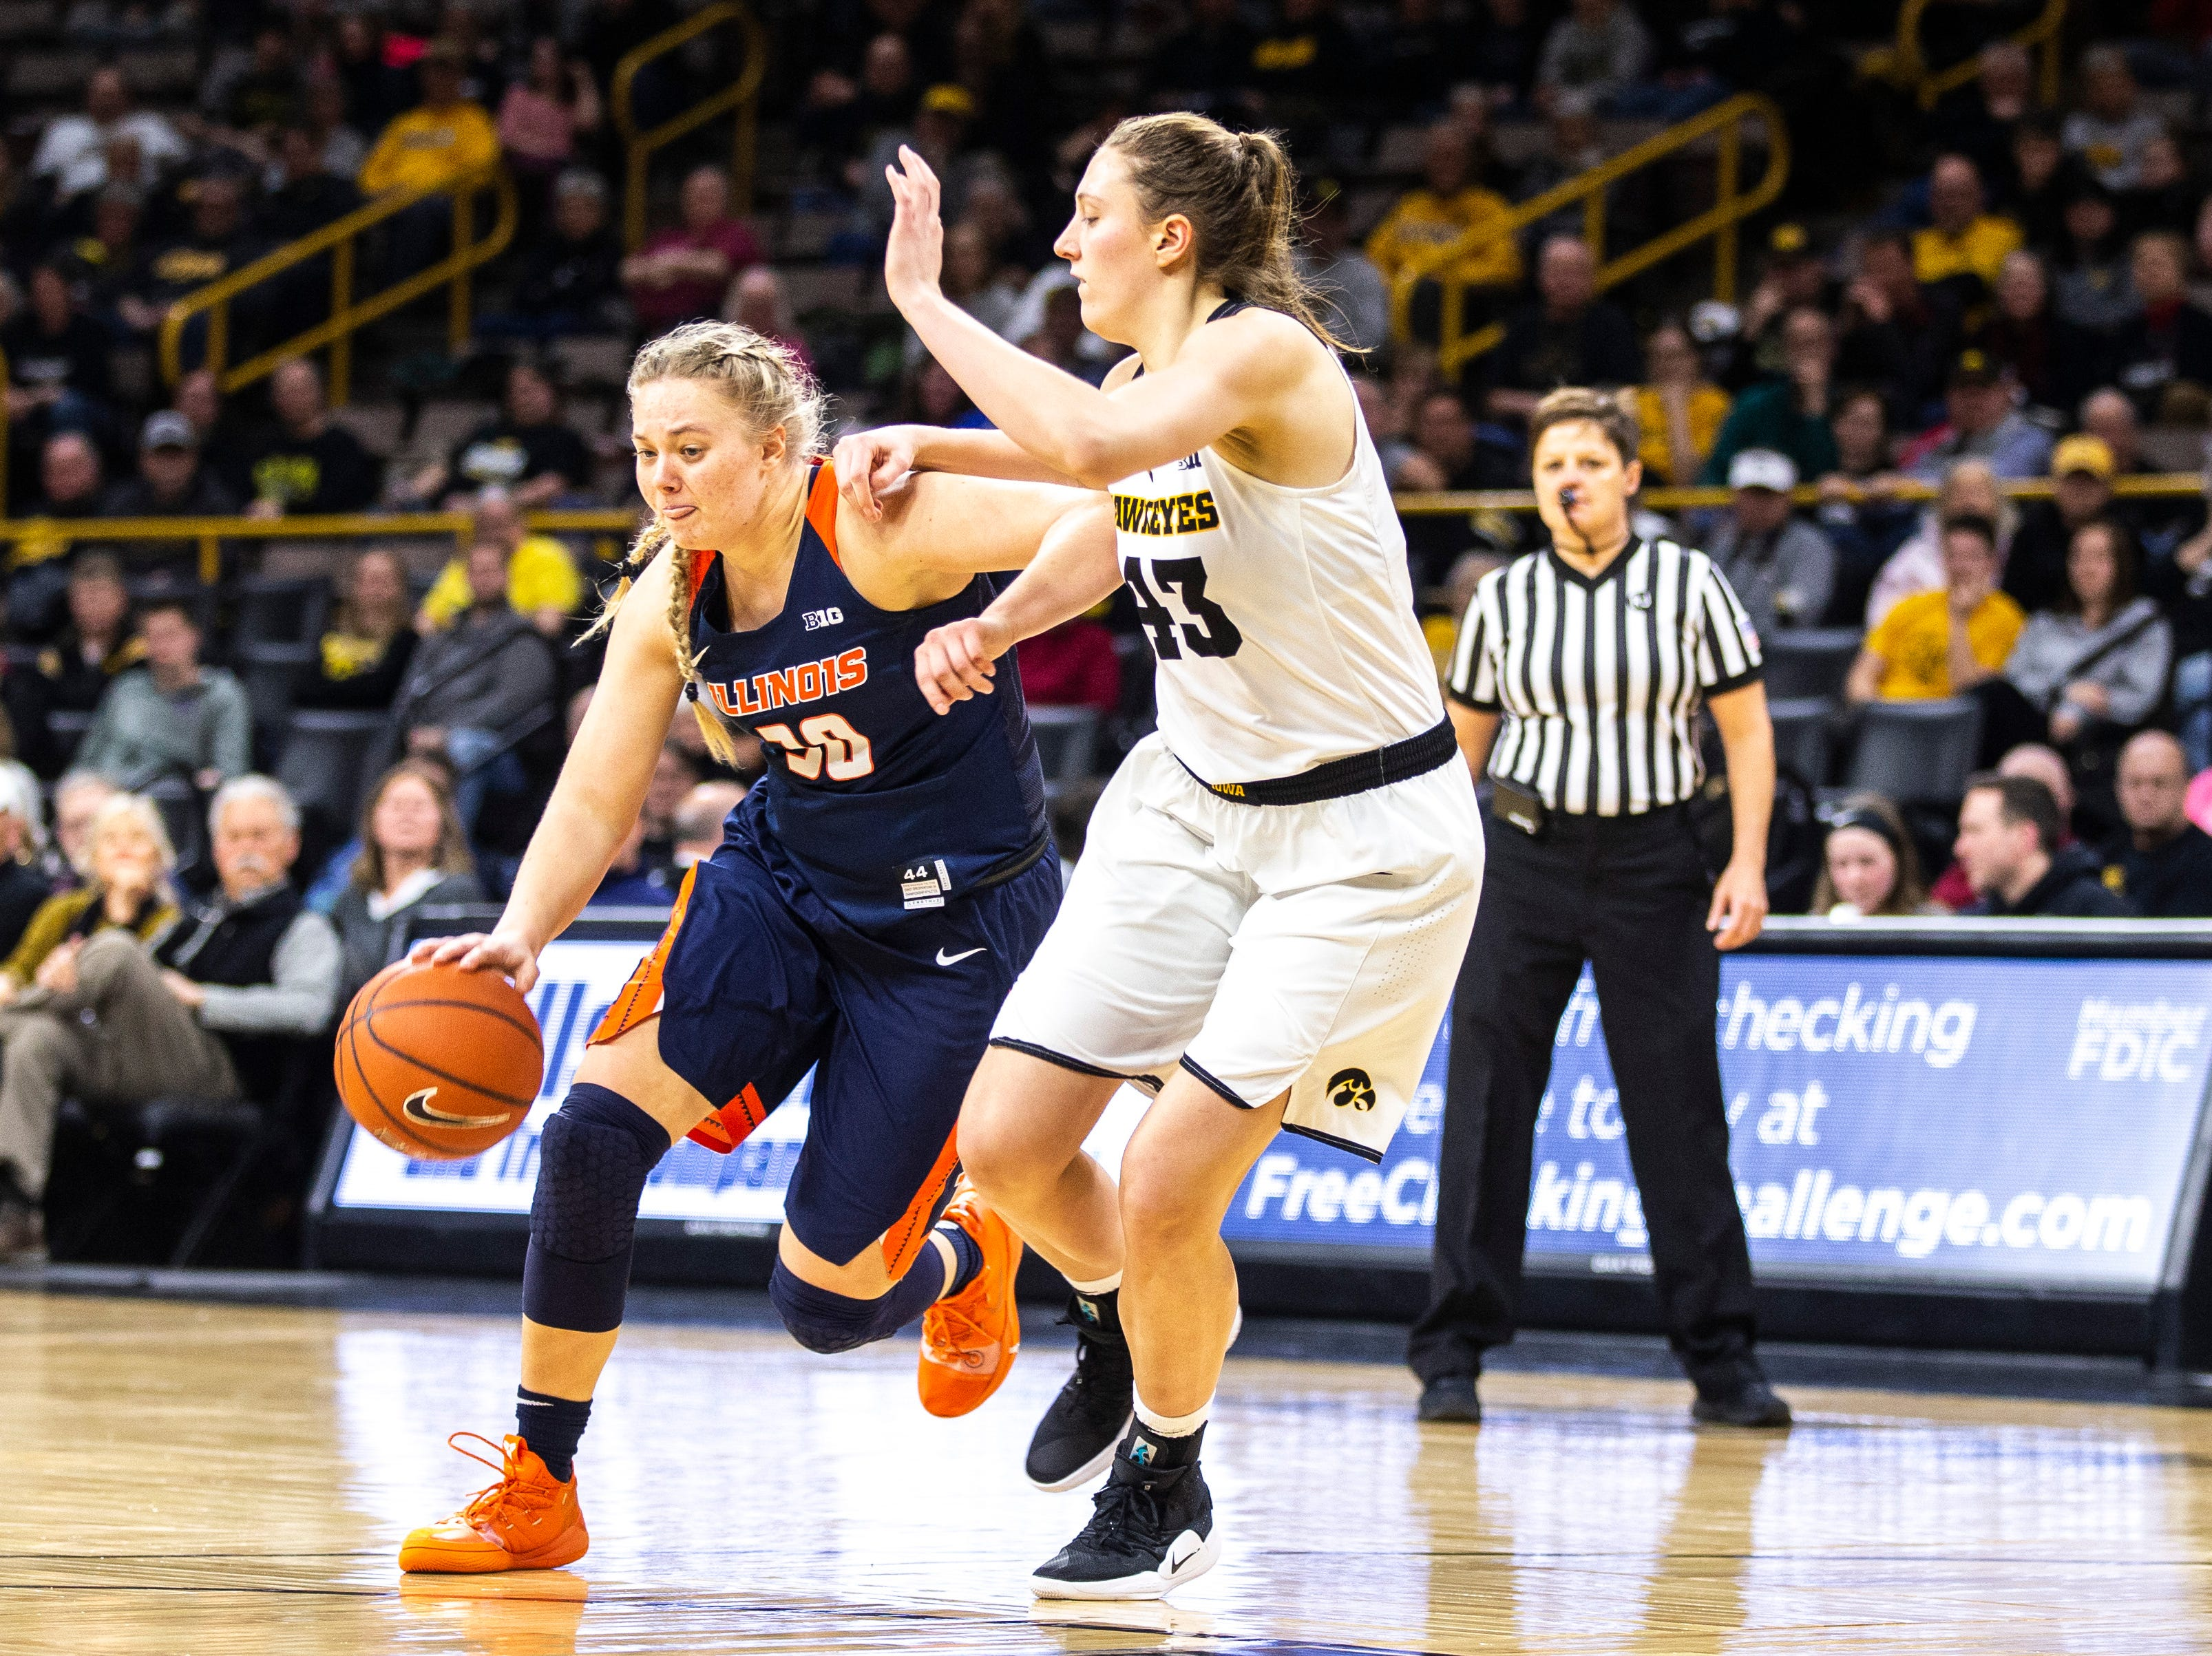 Illinois guard Courtney Joens takes the ball up court while Iowa forward Amanda Ollinger (43) defends during a NCAA Big Ten Conference women's basketball game on Thursday, Feb. 14, 2019 at Carver-Hawkeye Arena in Iowa City, Iowa.